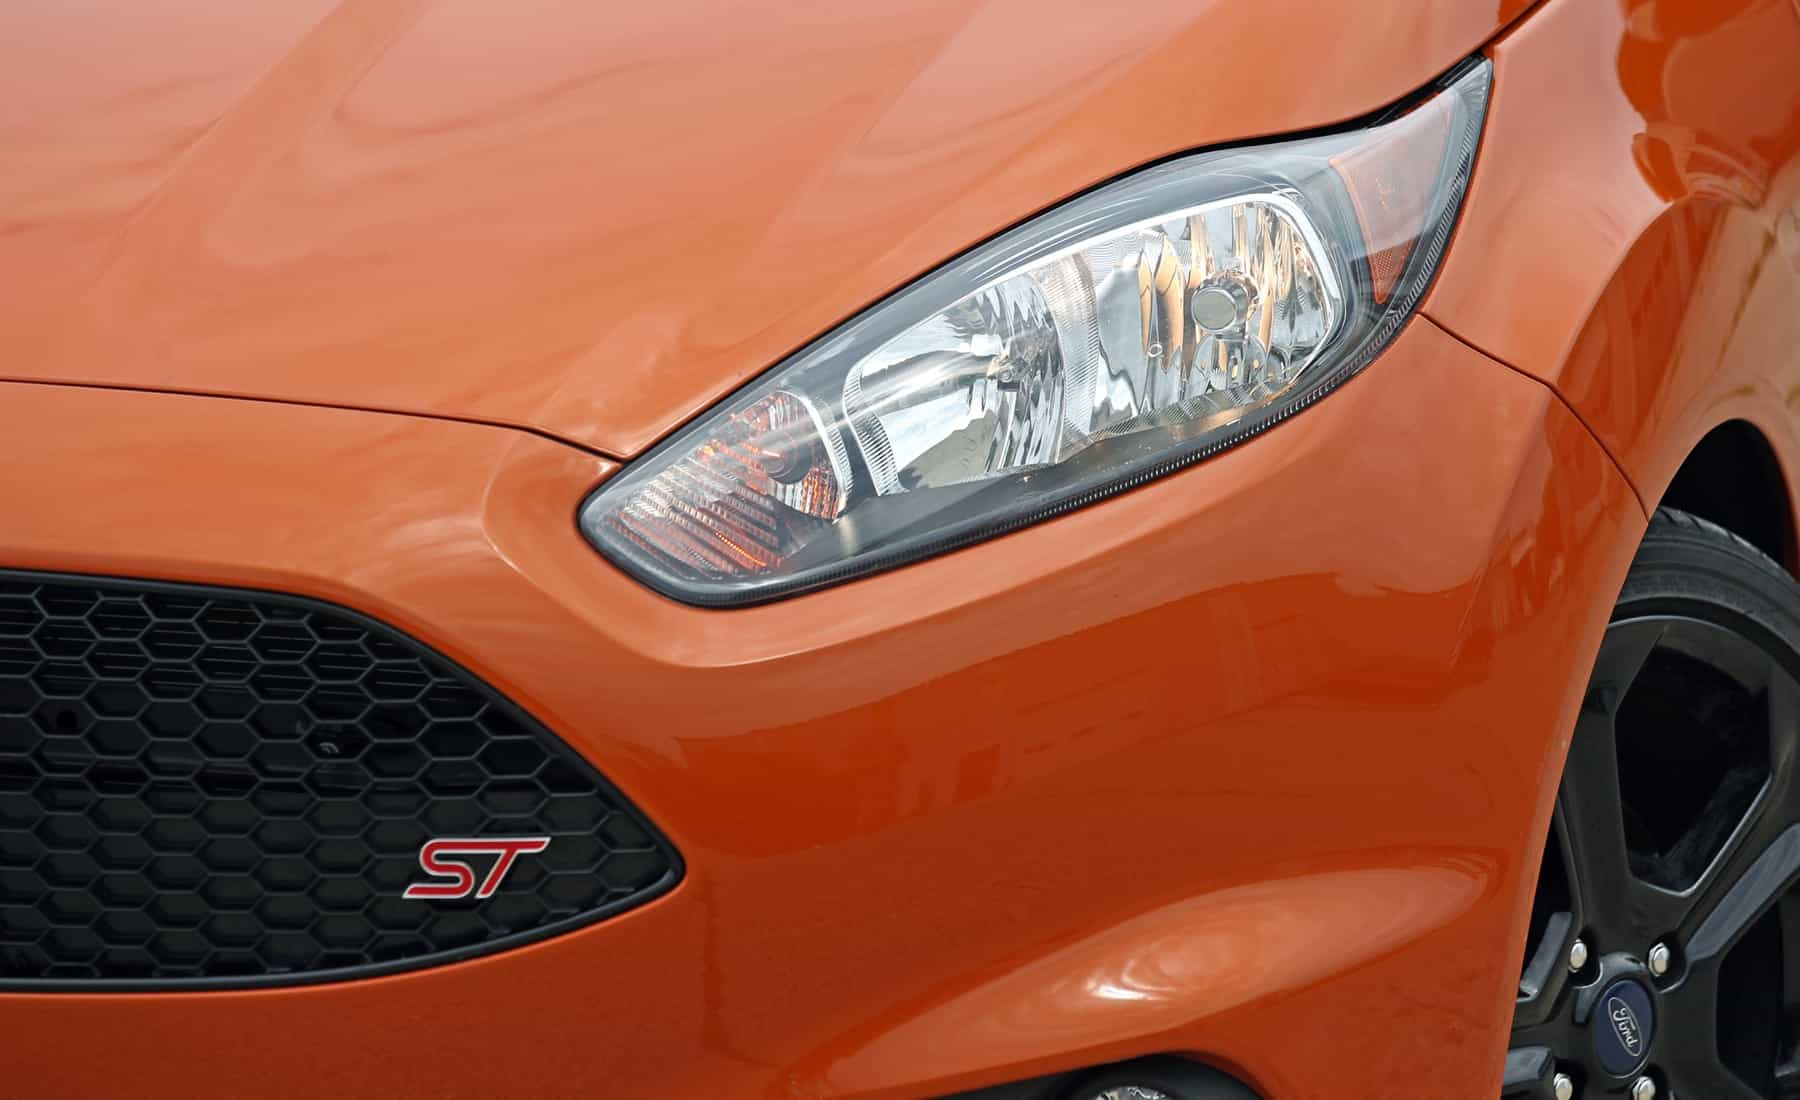 2017 Ford Fiesta ST Exterior View Headlight (Photo 43 of 47)